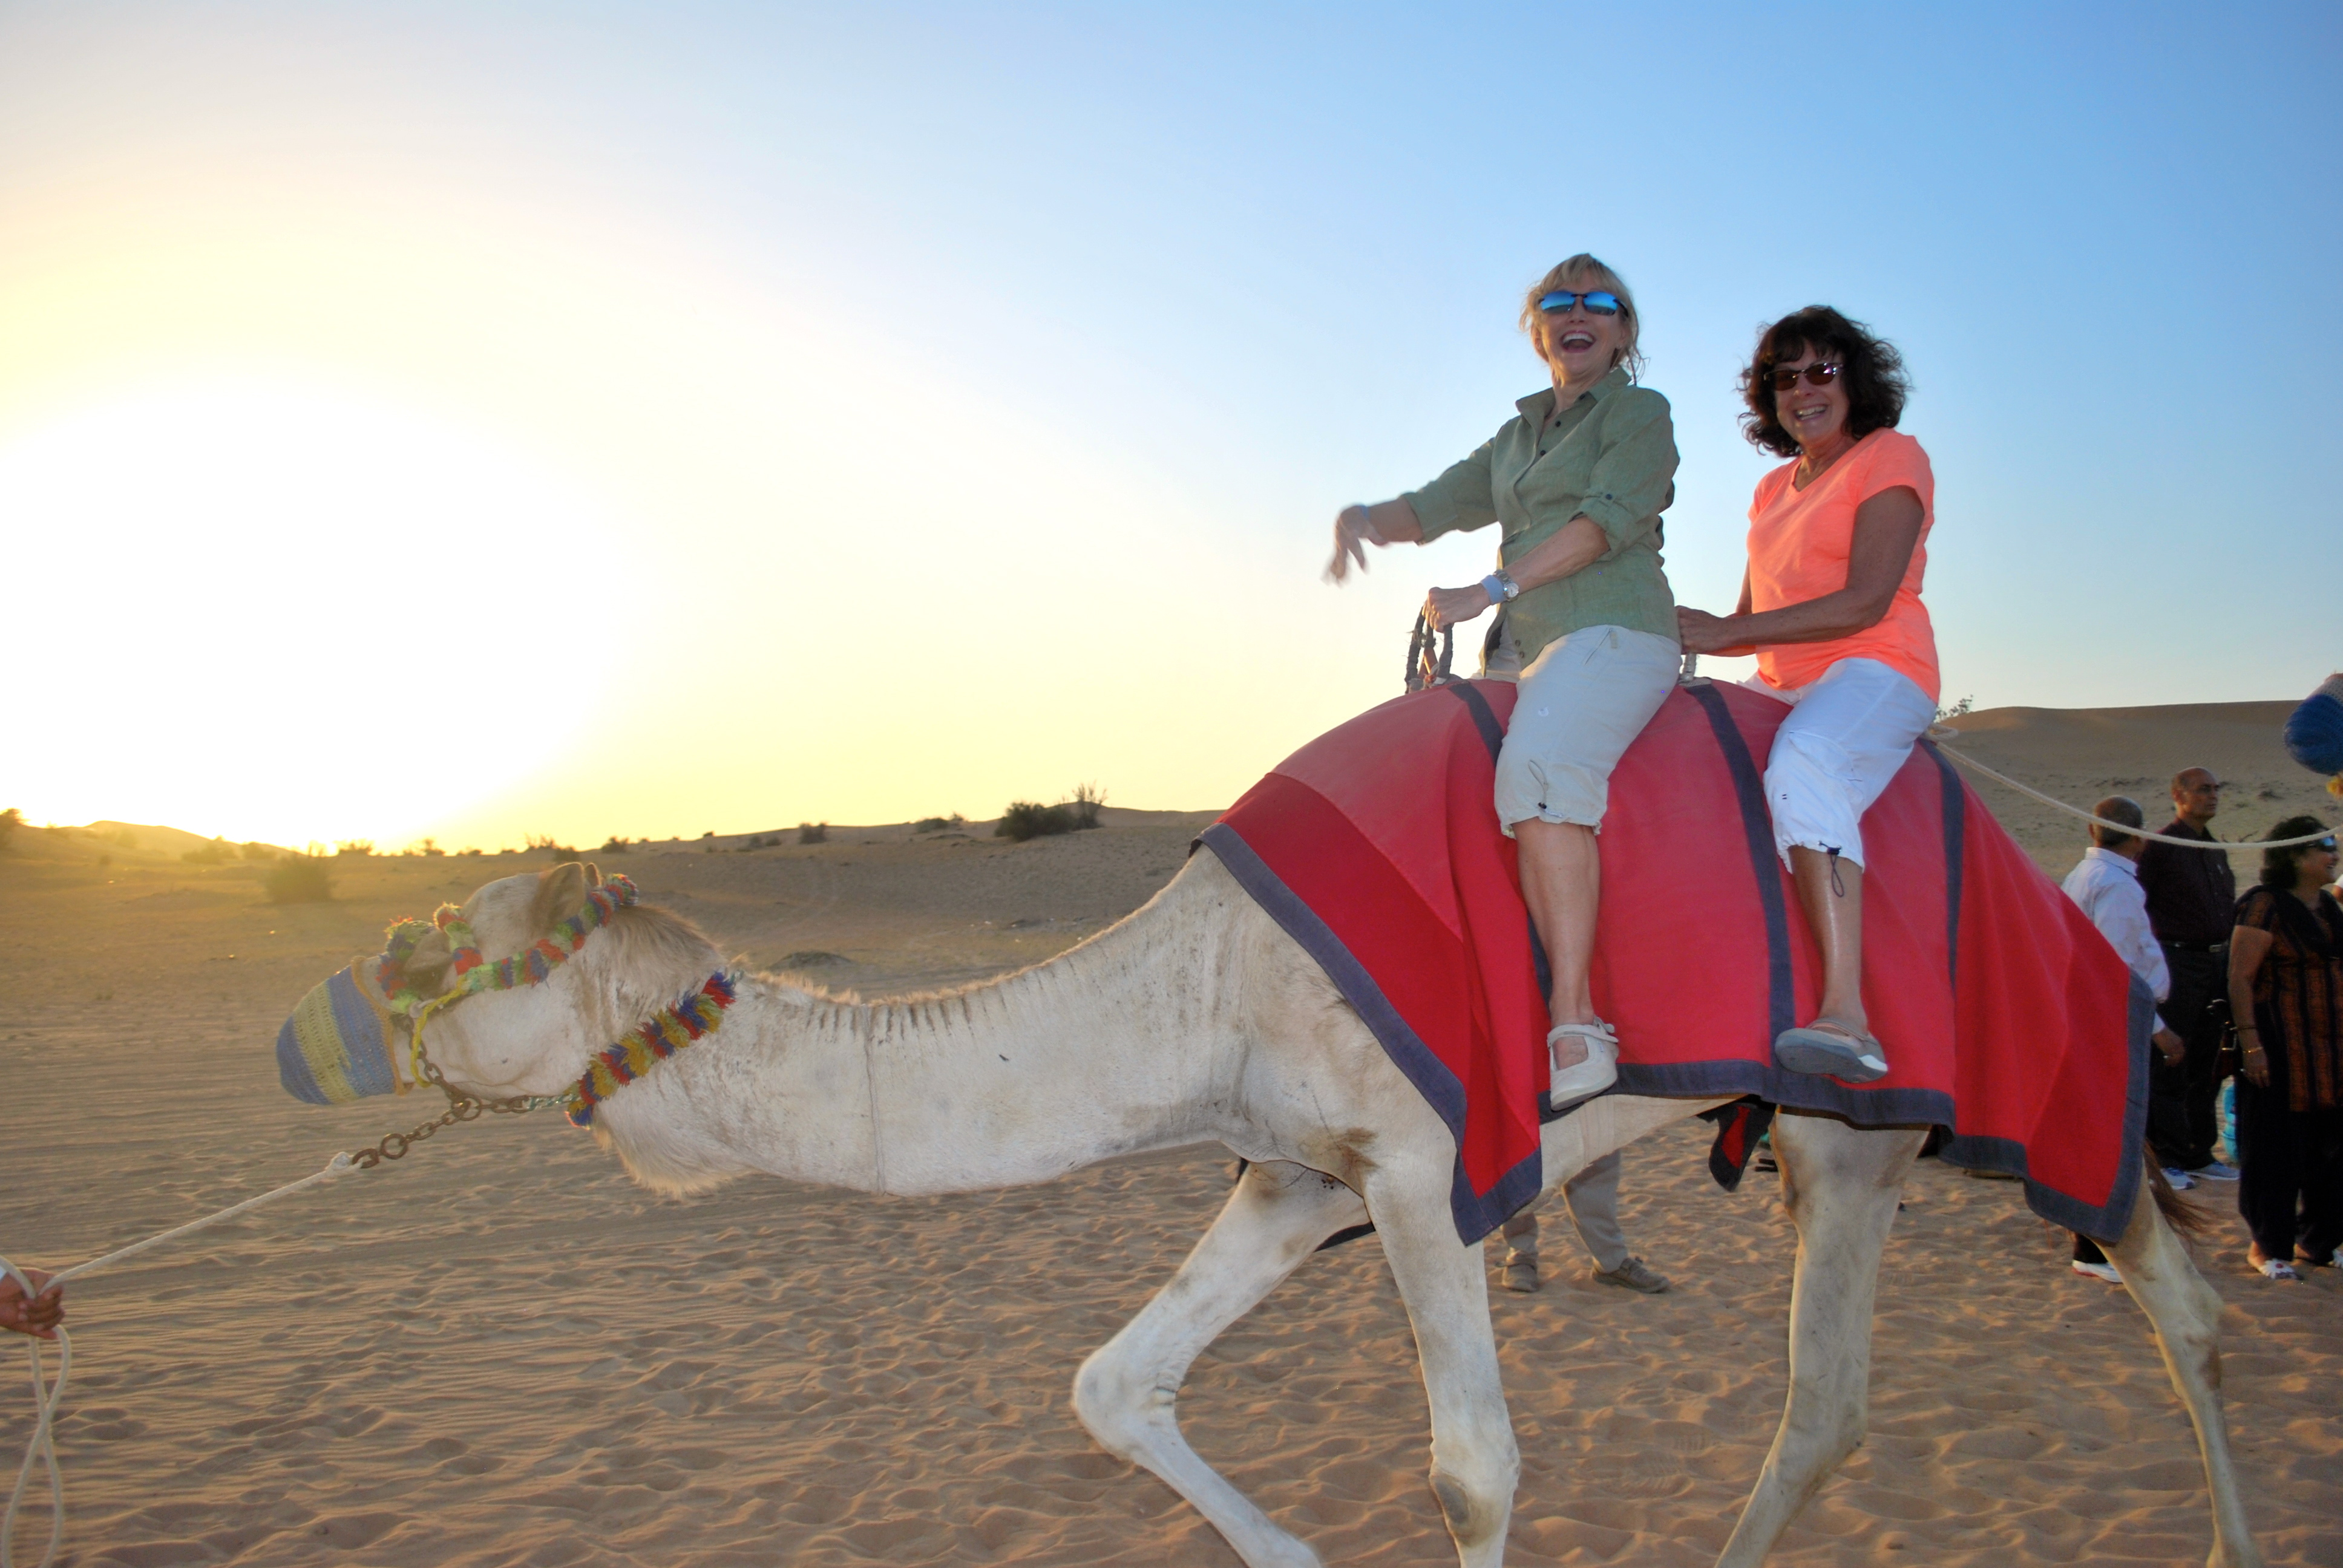 Two women riding a camel in the desert outside Dubai